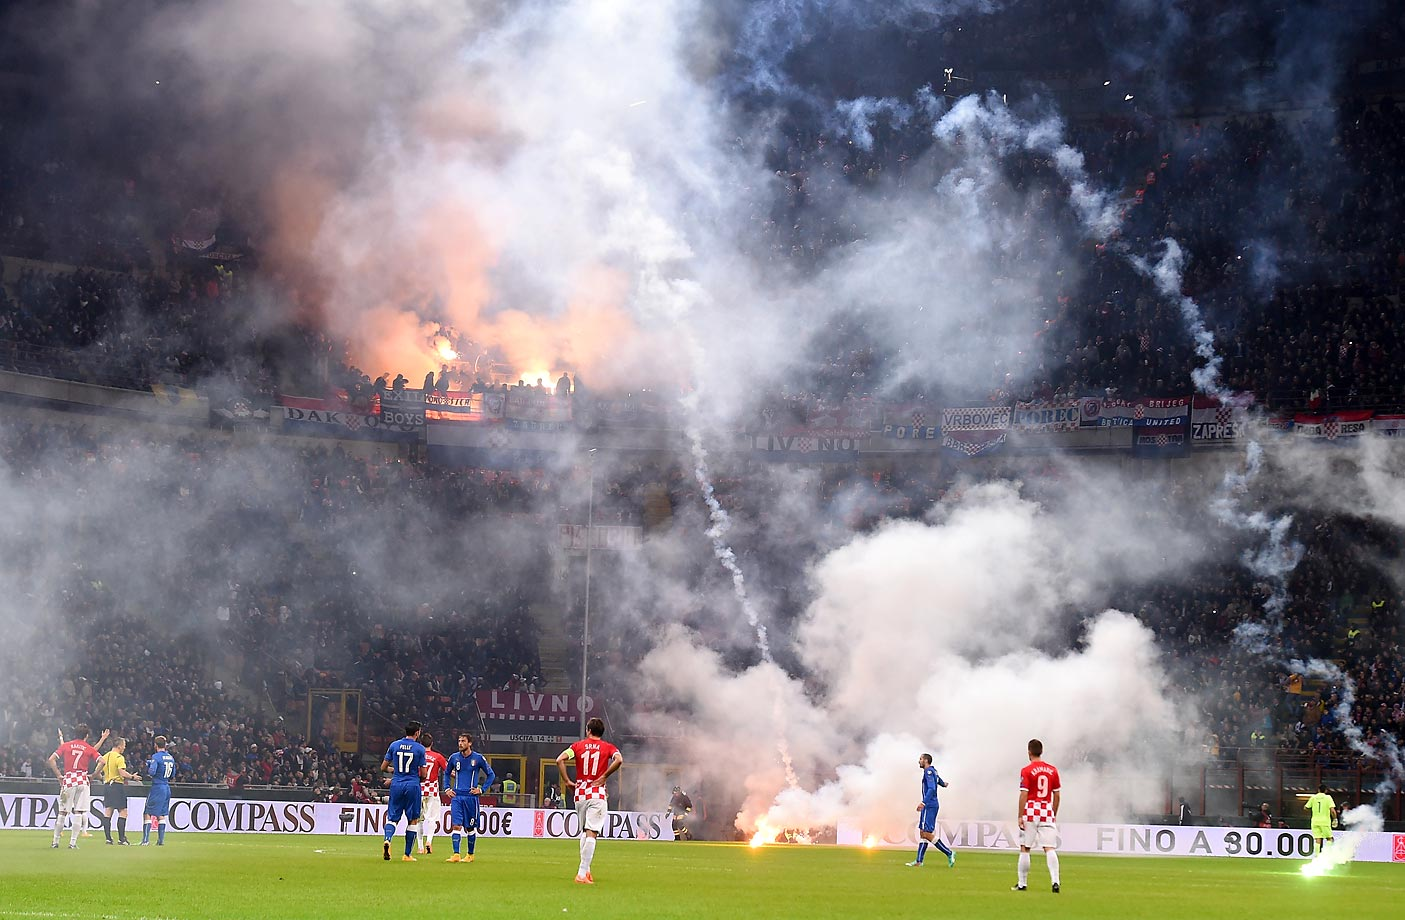 Fans of Croatia throw flares onto the field during the EURO 2016 Group H Qualifier match between Italy and Croatia.